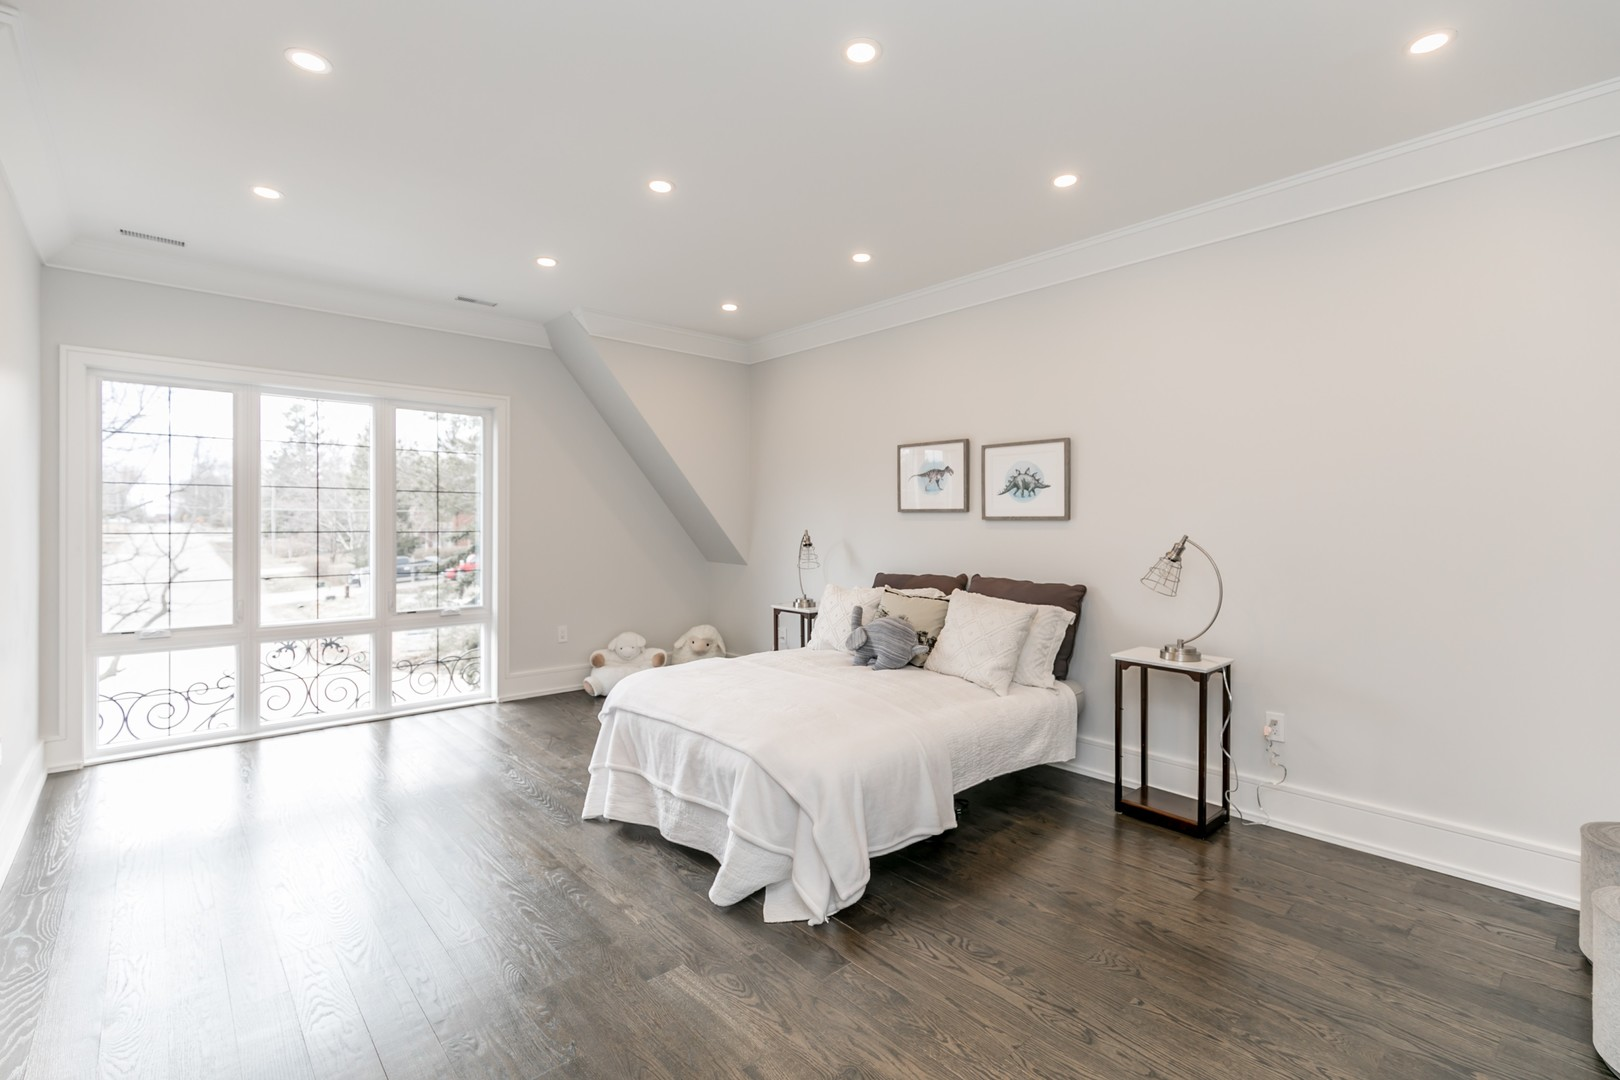 Third Bedroom View, 19 Ryder, Vaughan Home Staging